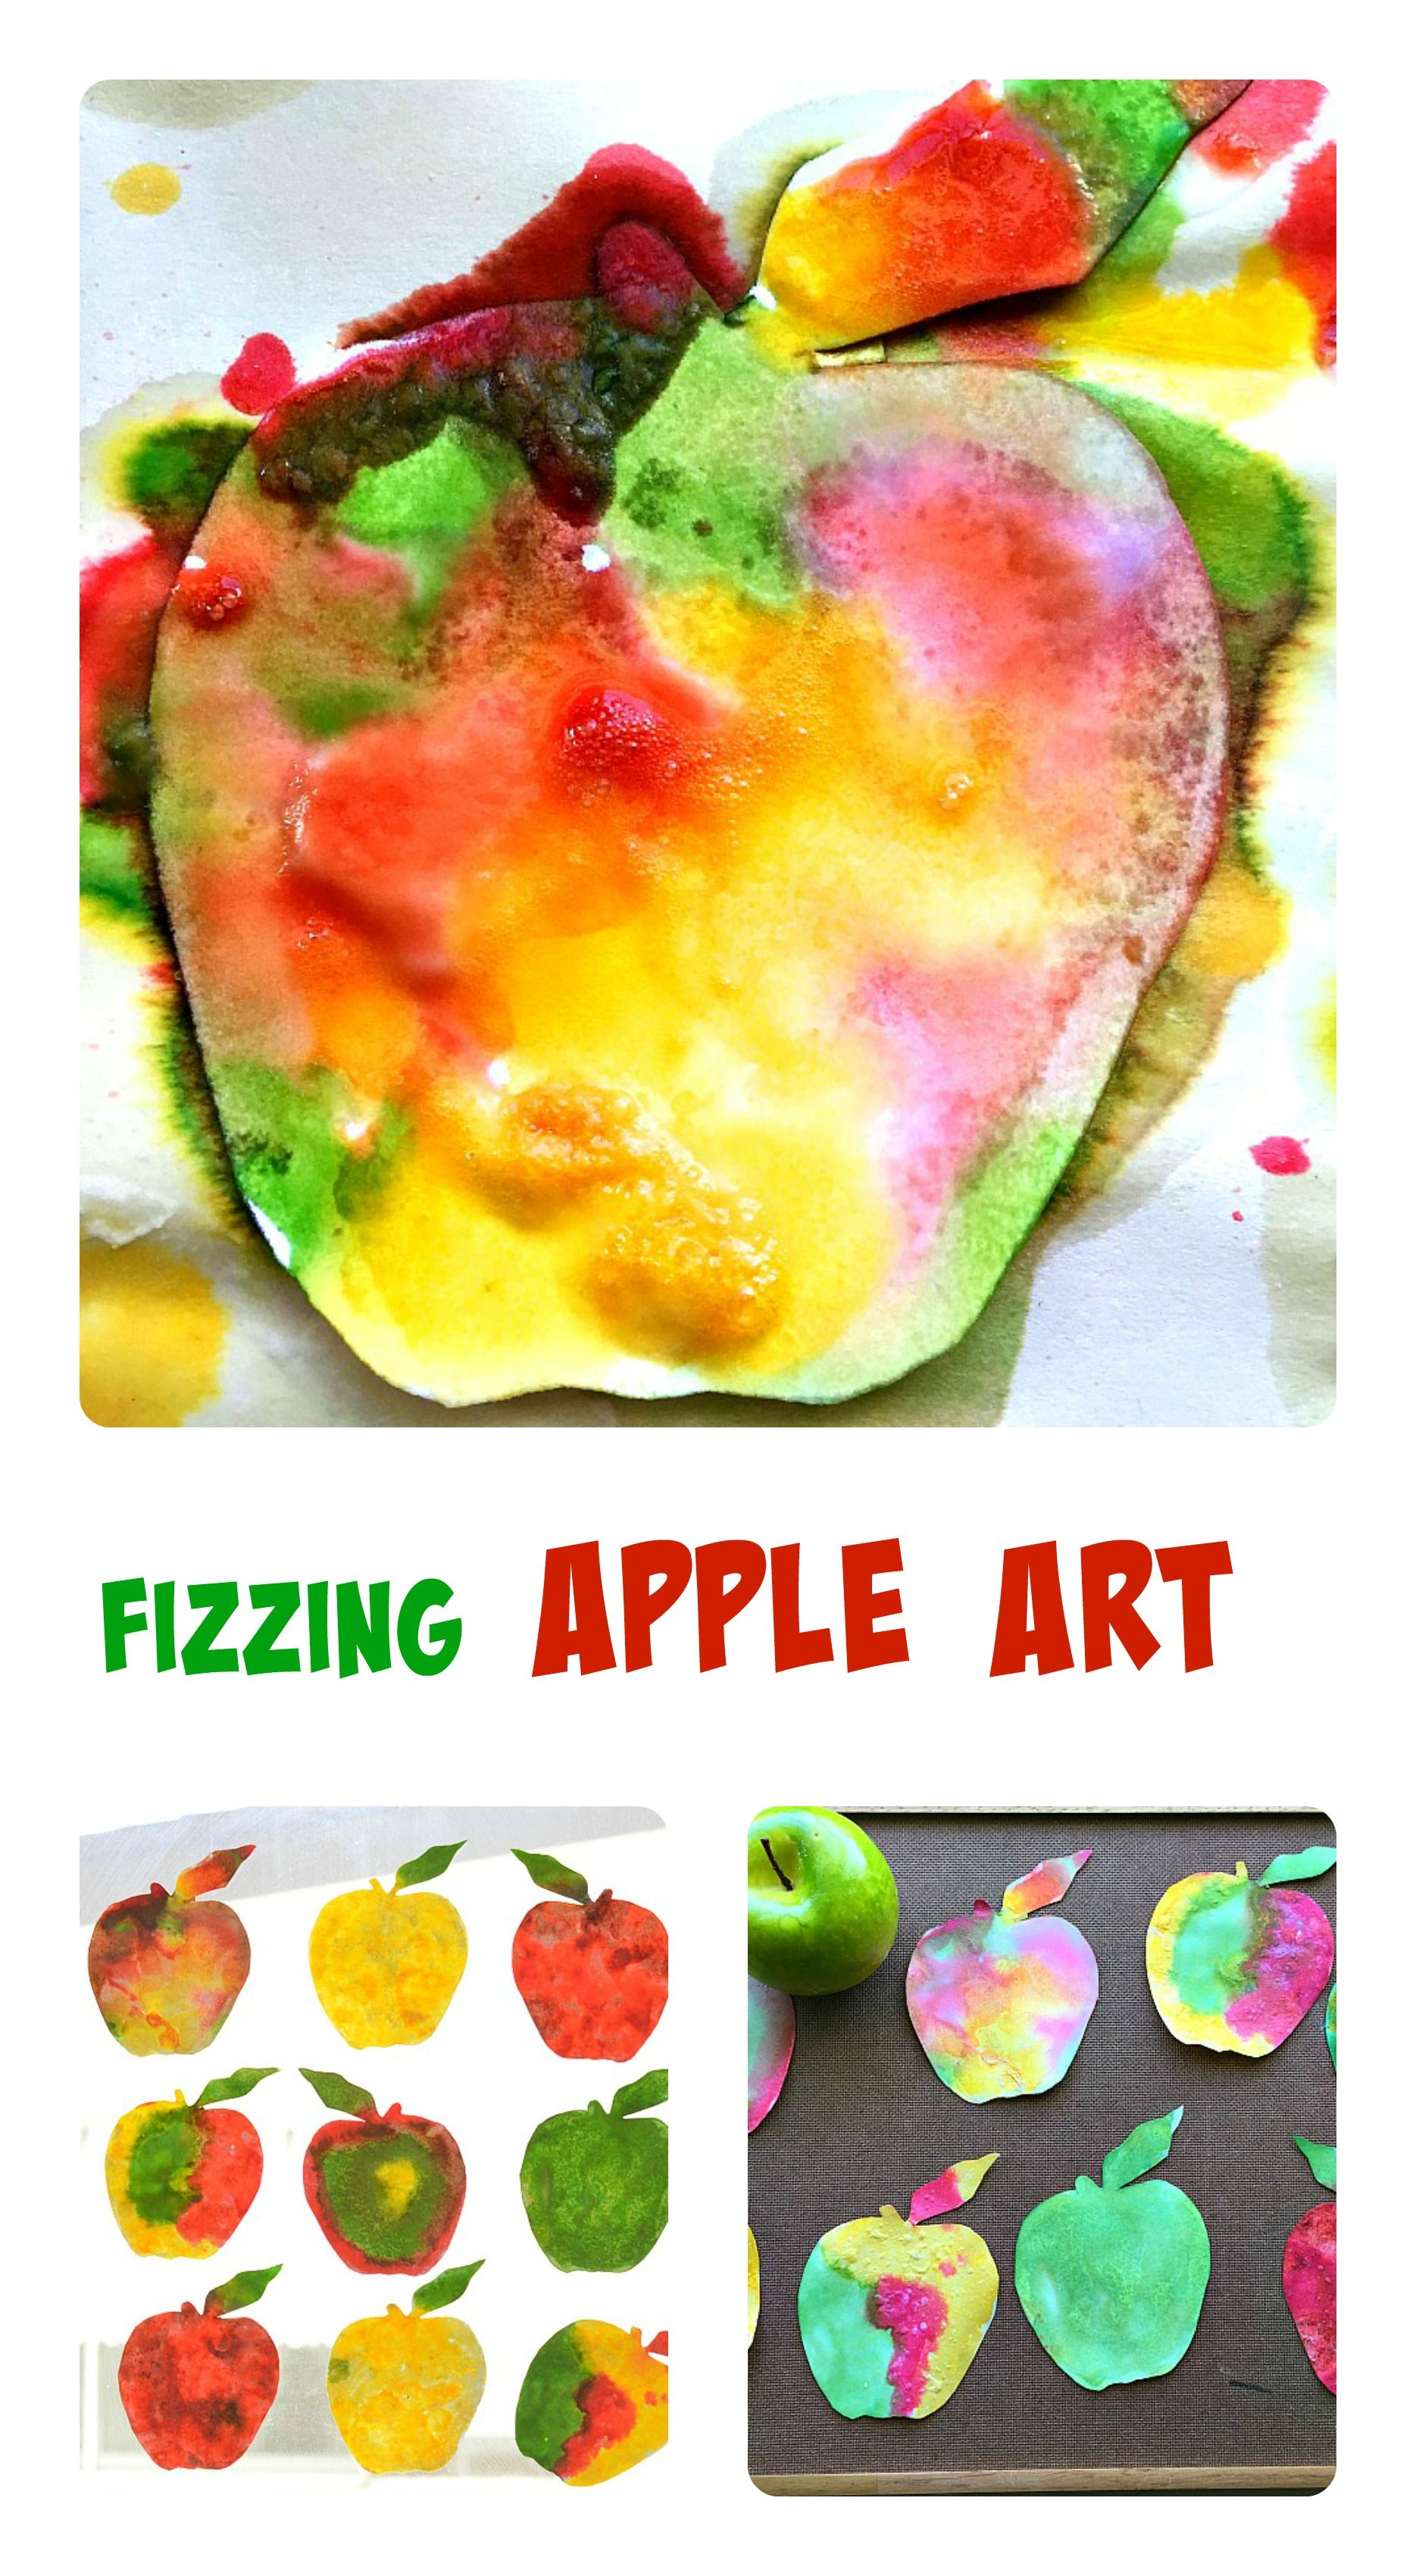 Science And Art Go Together In This Fun And Engaging Apple Themed Art Activity Make Sun